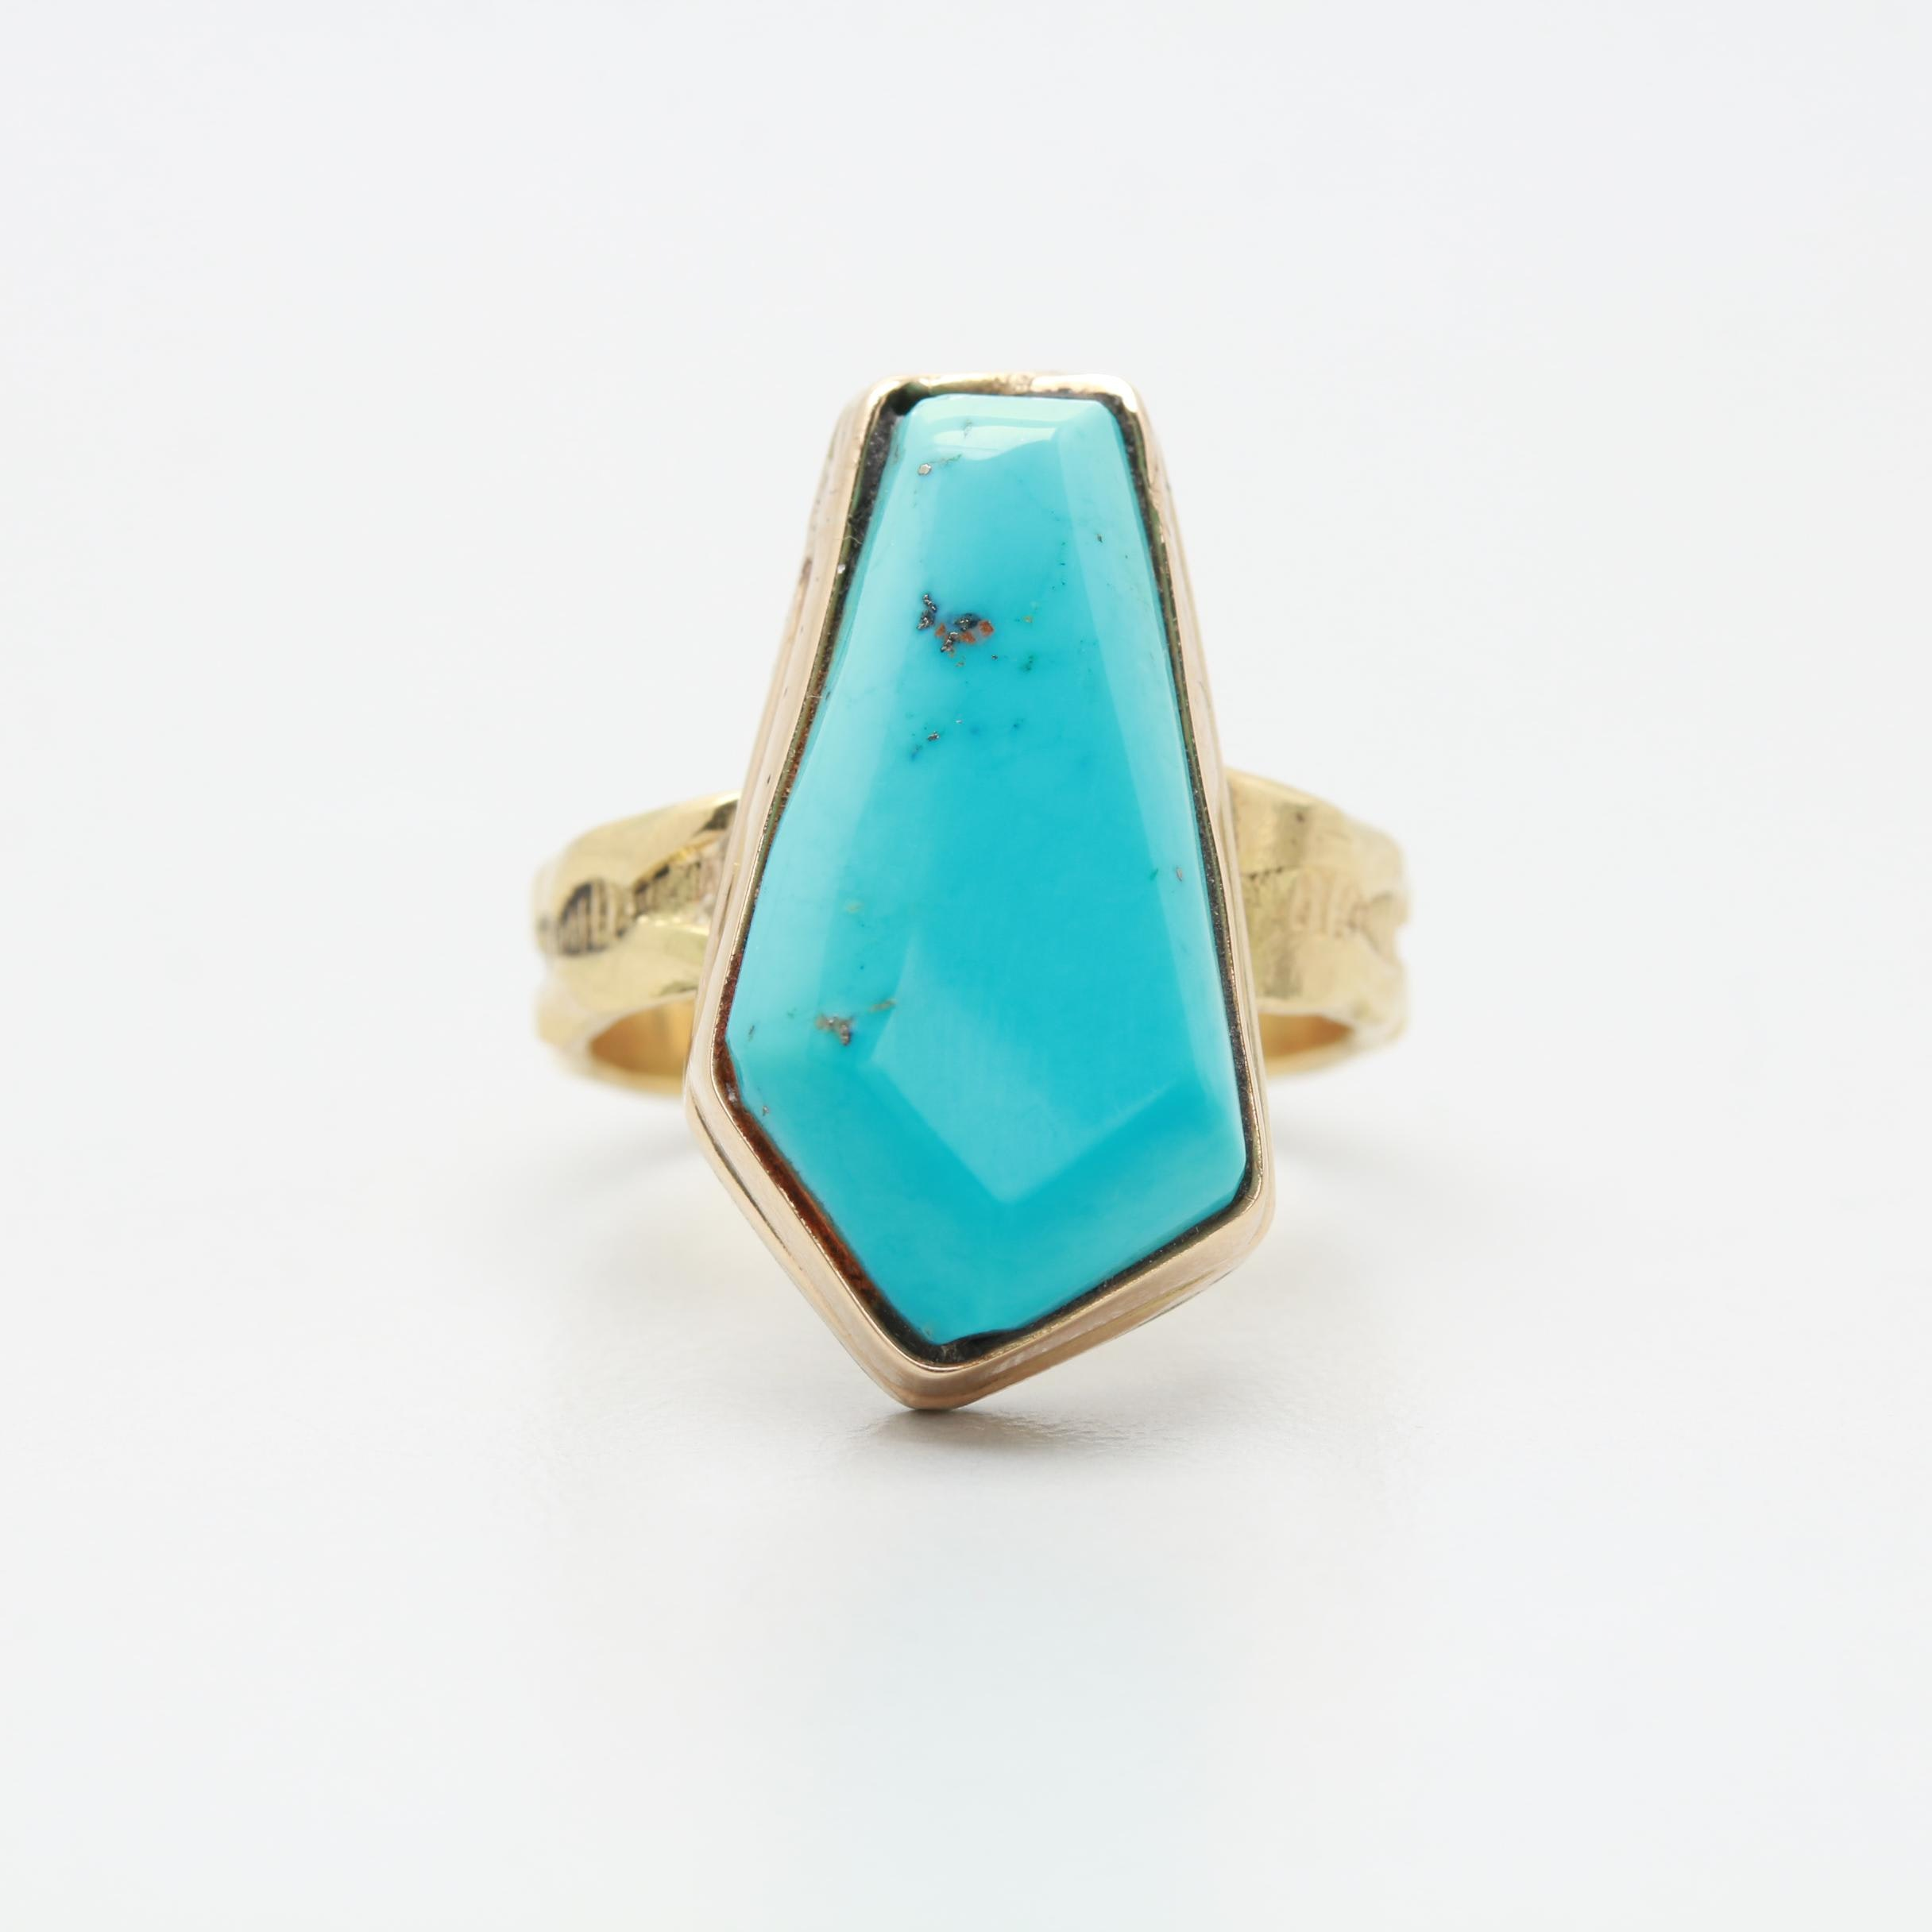 14K and 10K Yellow Gold Sterling Silver Turquoise Ring